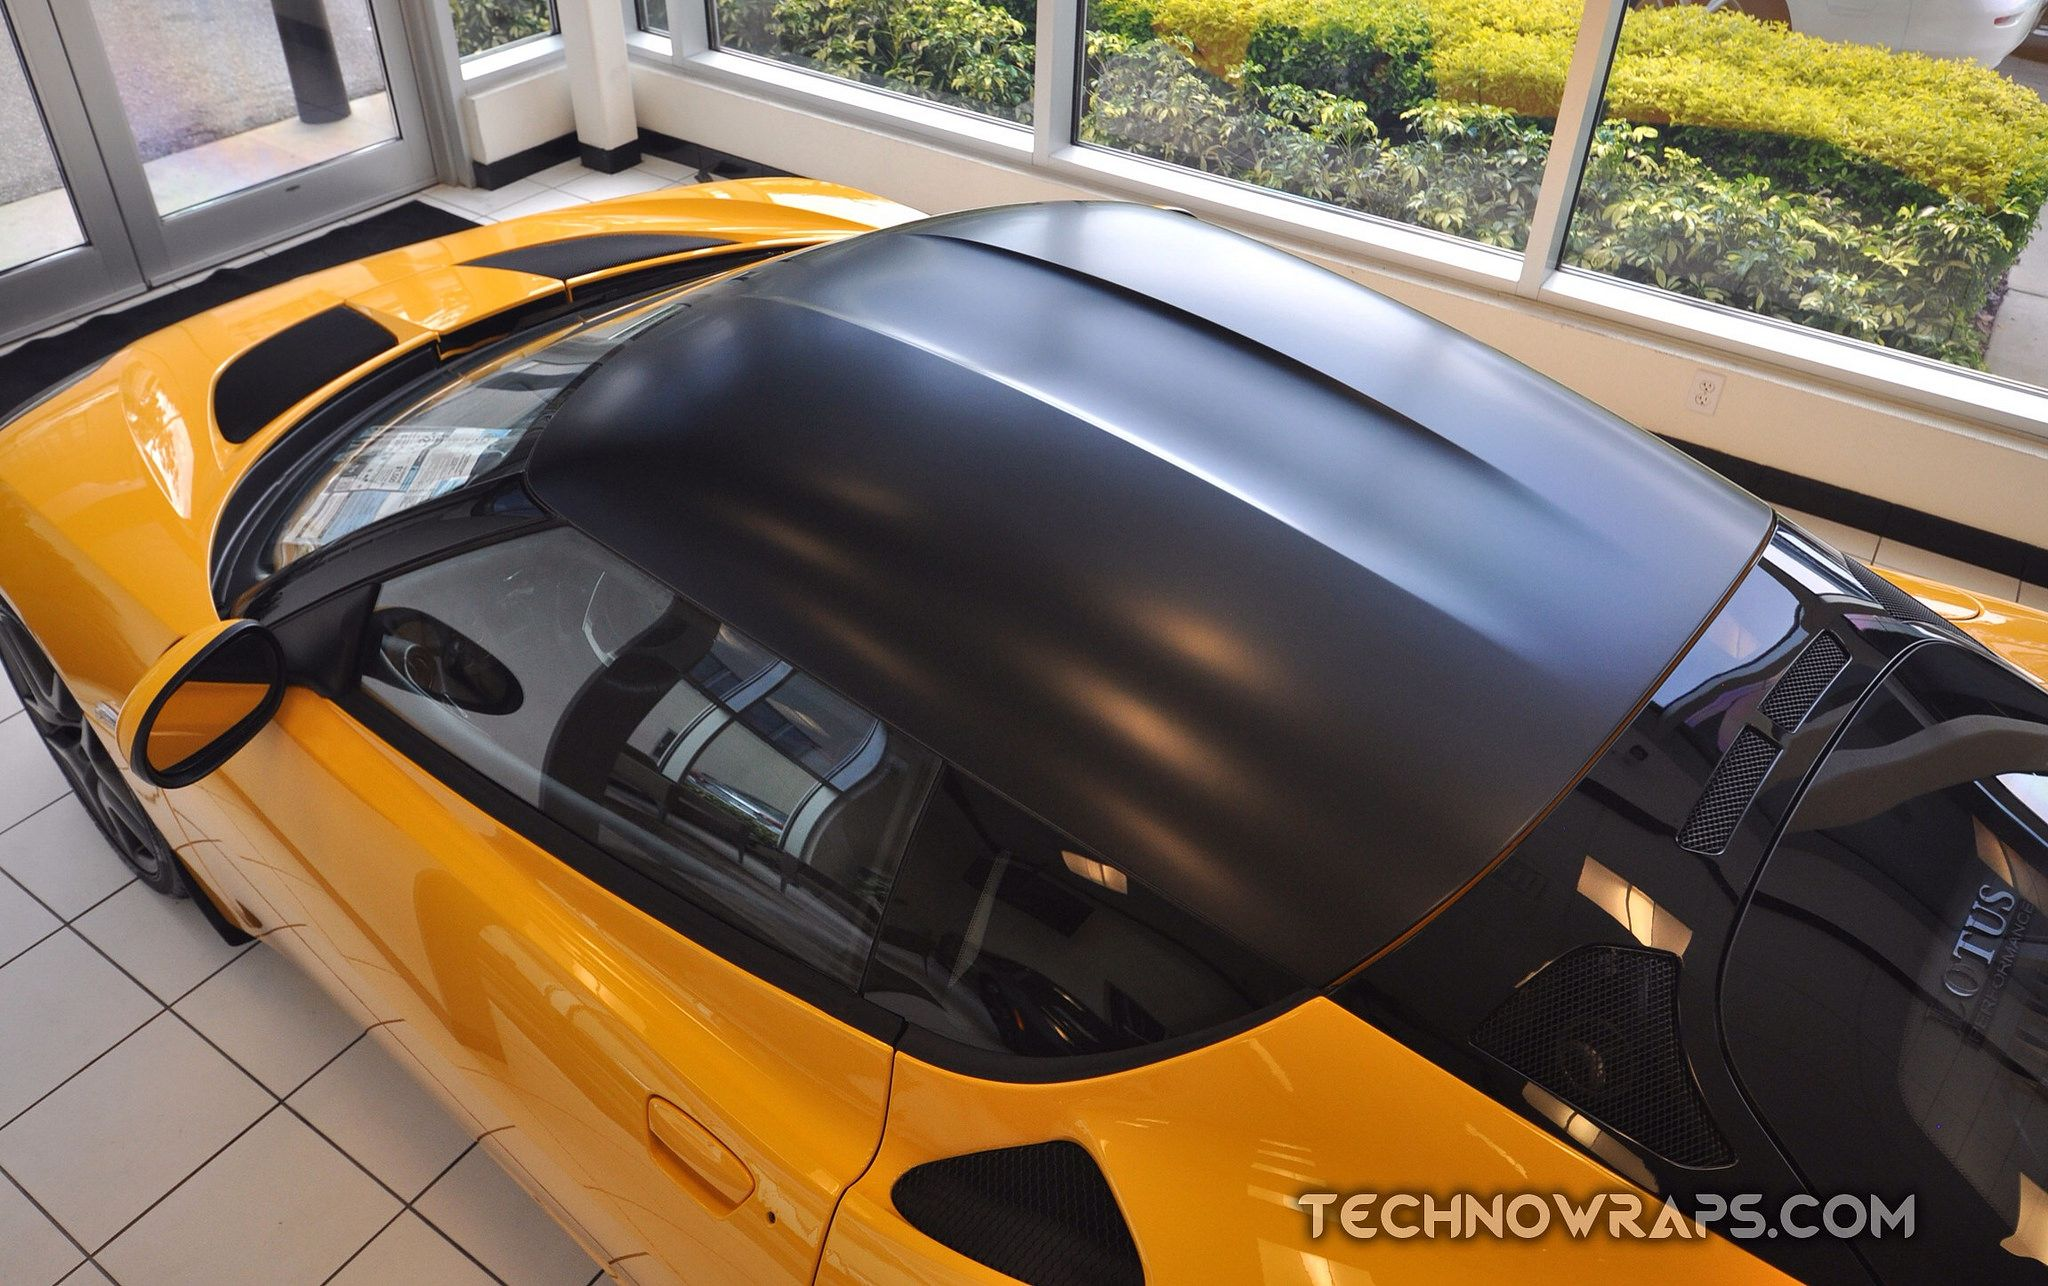 3M Satin Black Series 1080 car roof wrap by TechnoSigns in